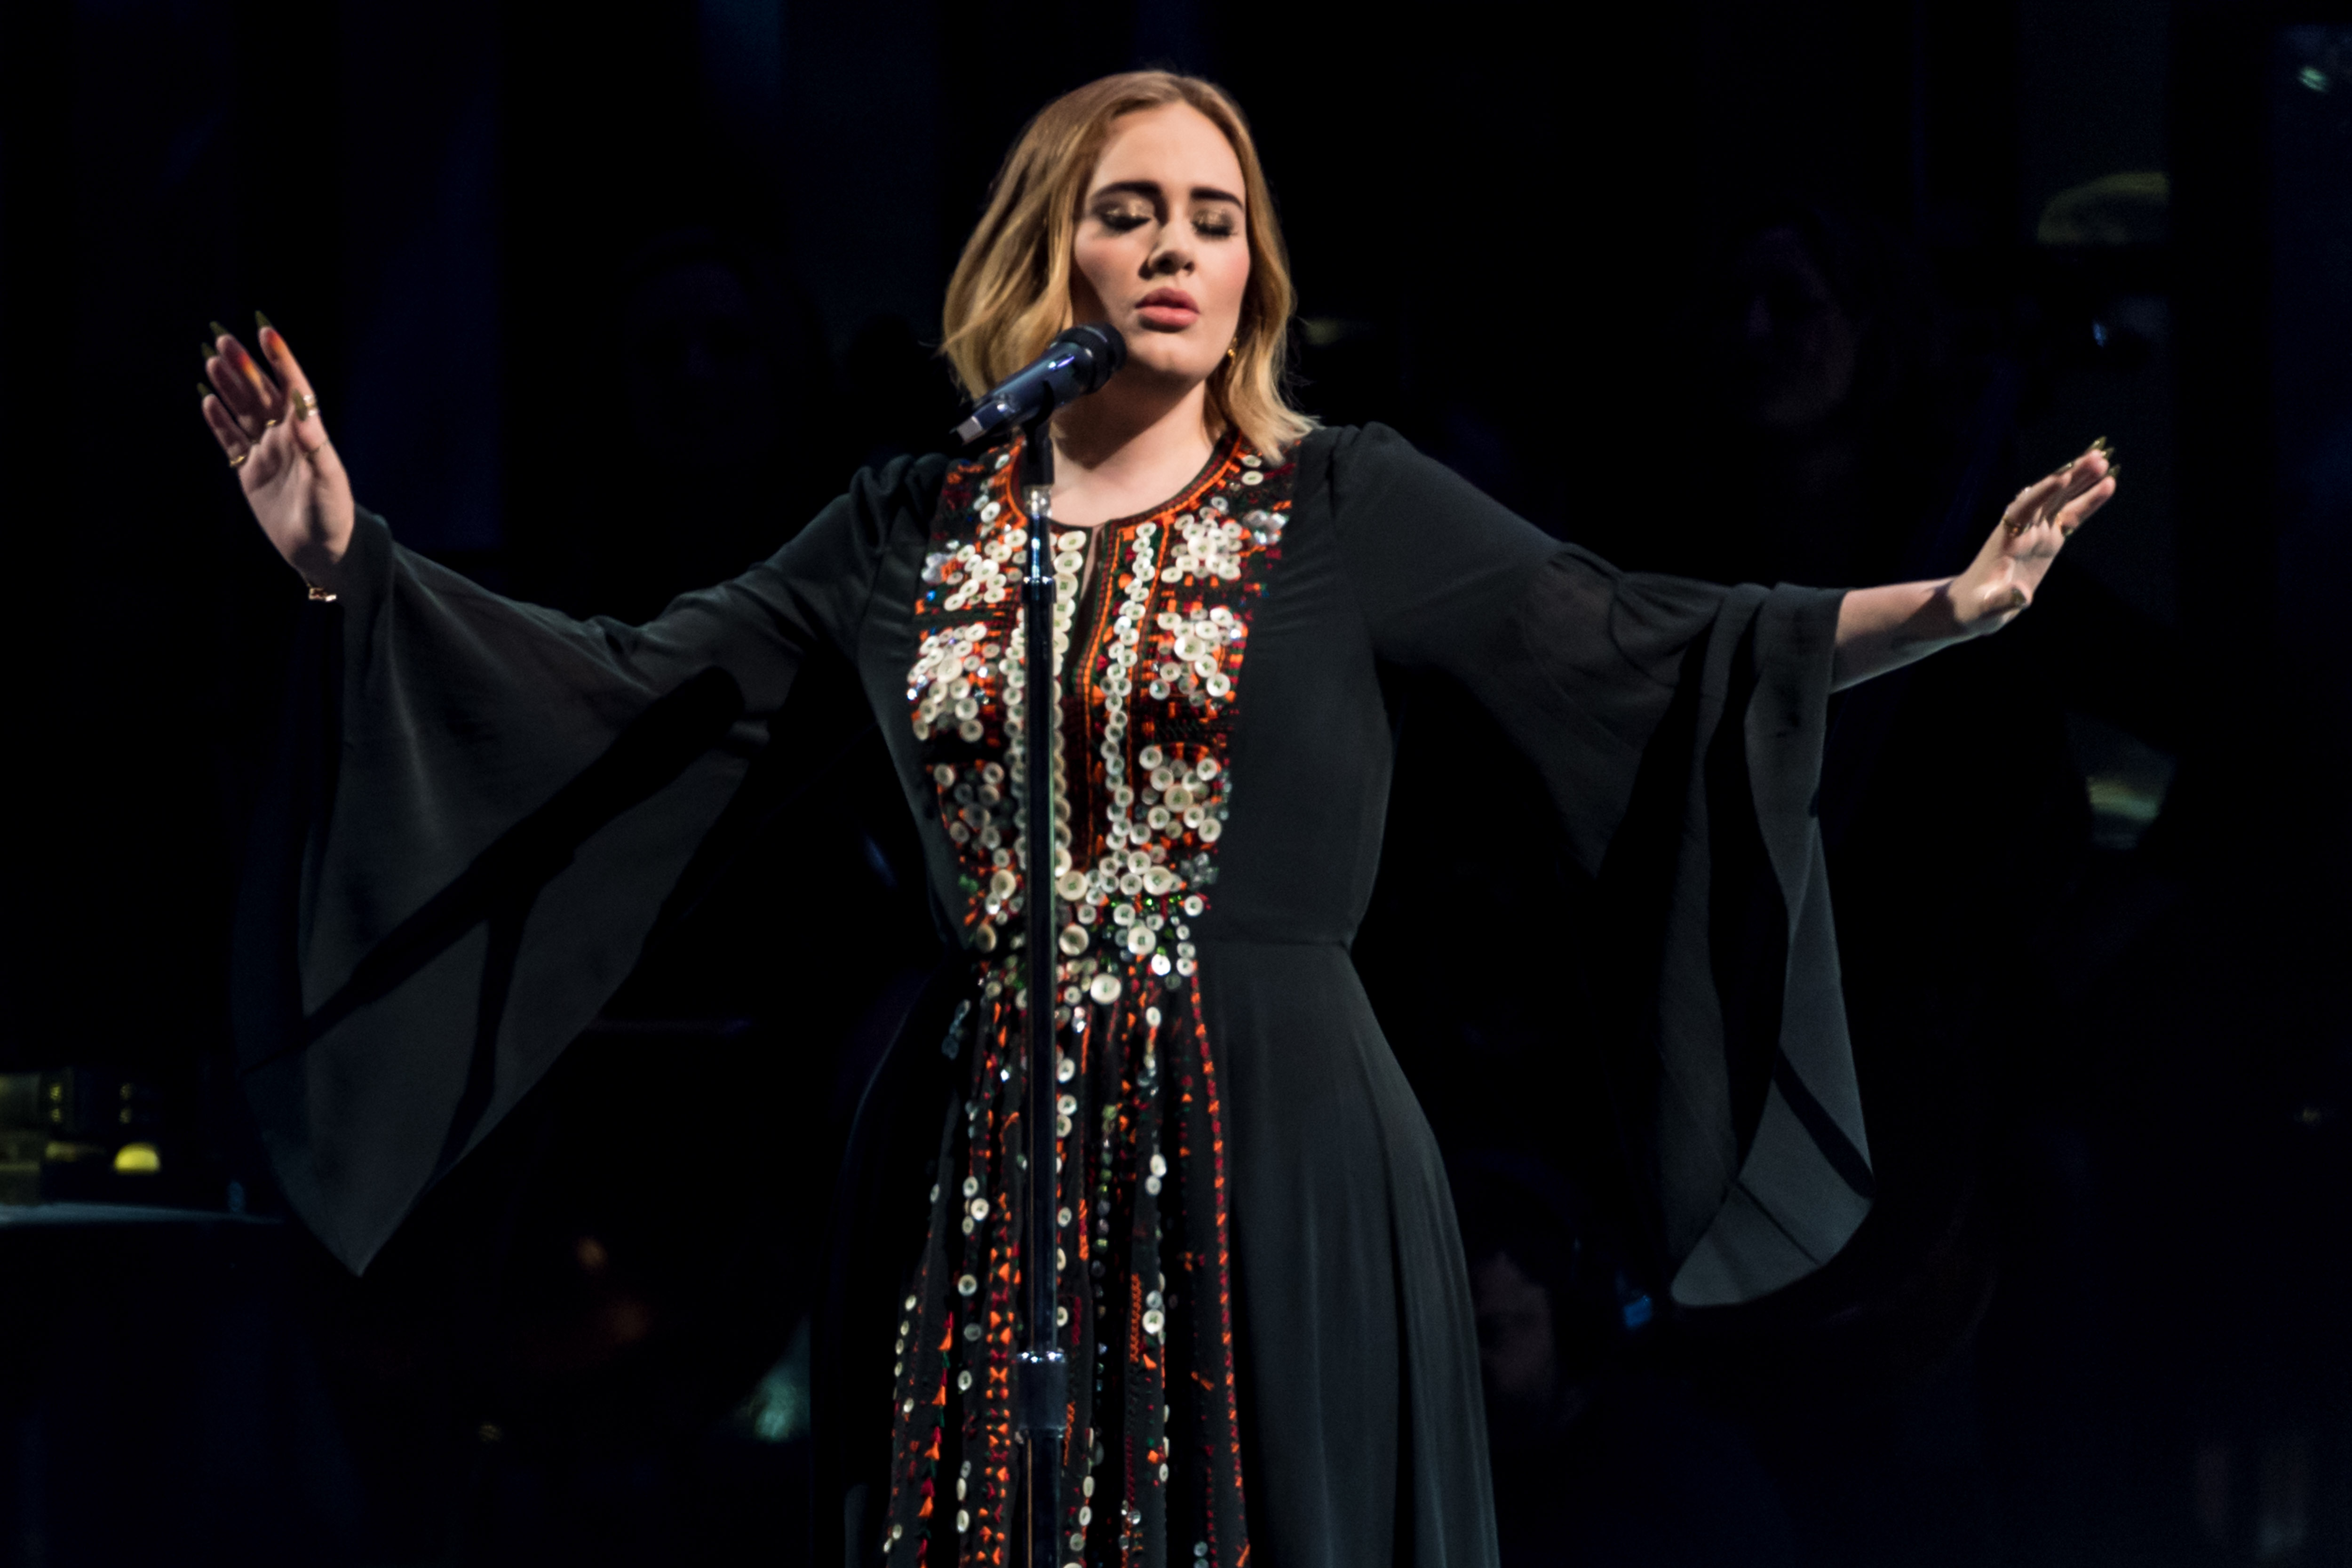 Adele wore her Glastonbury Festival dress to watch it and needs you to calm down about a new album